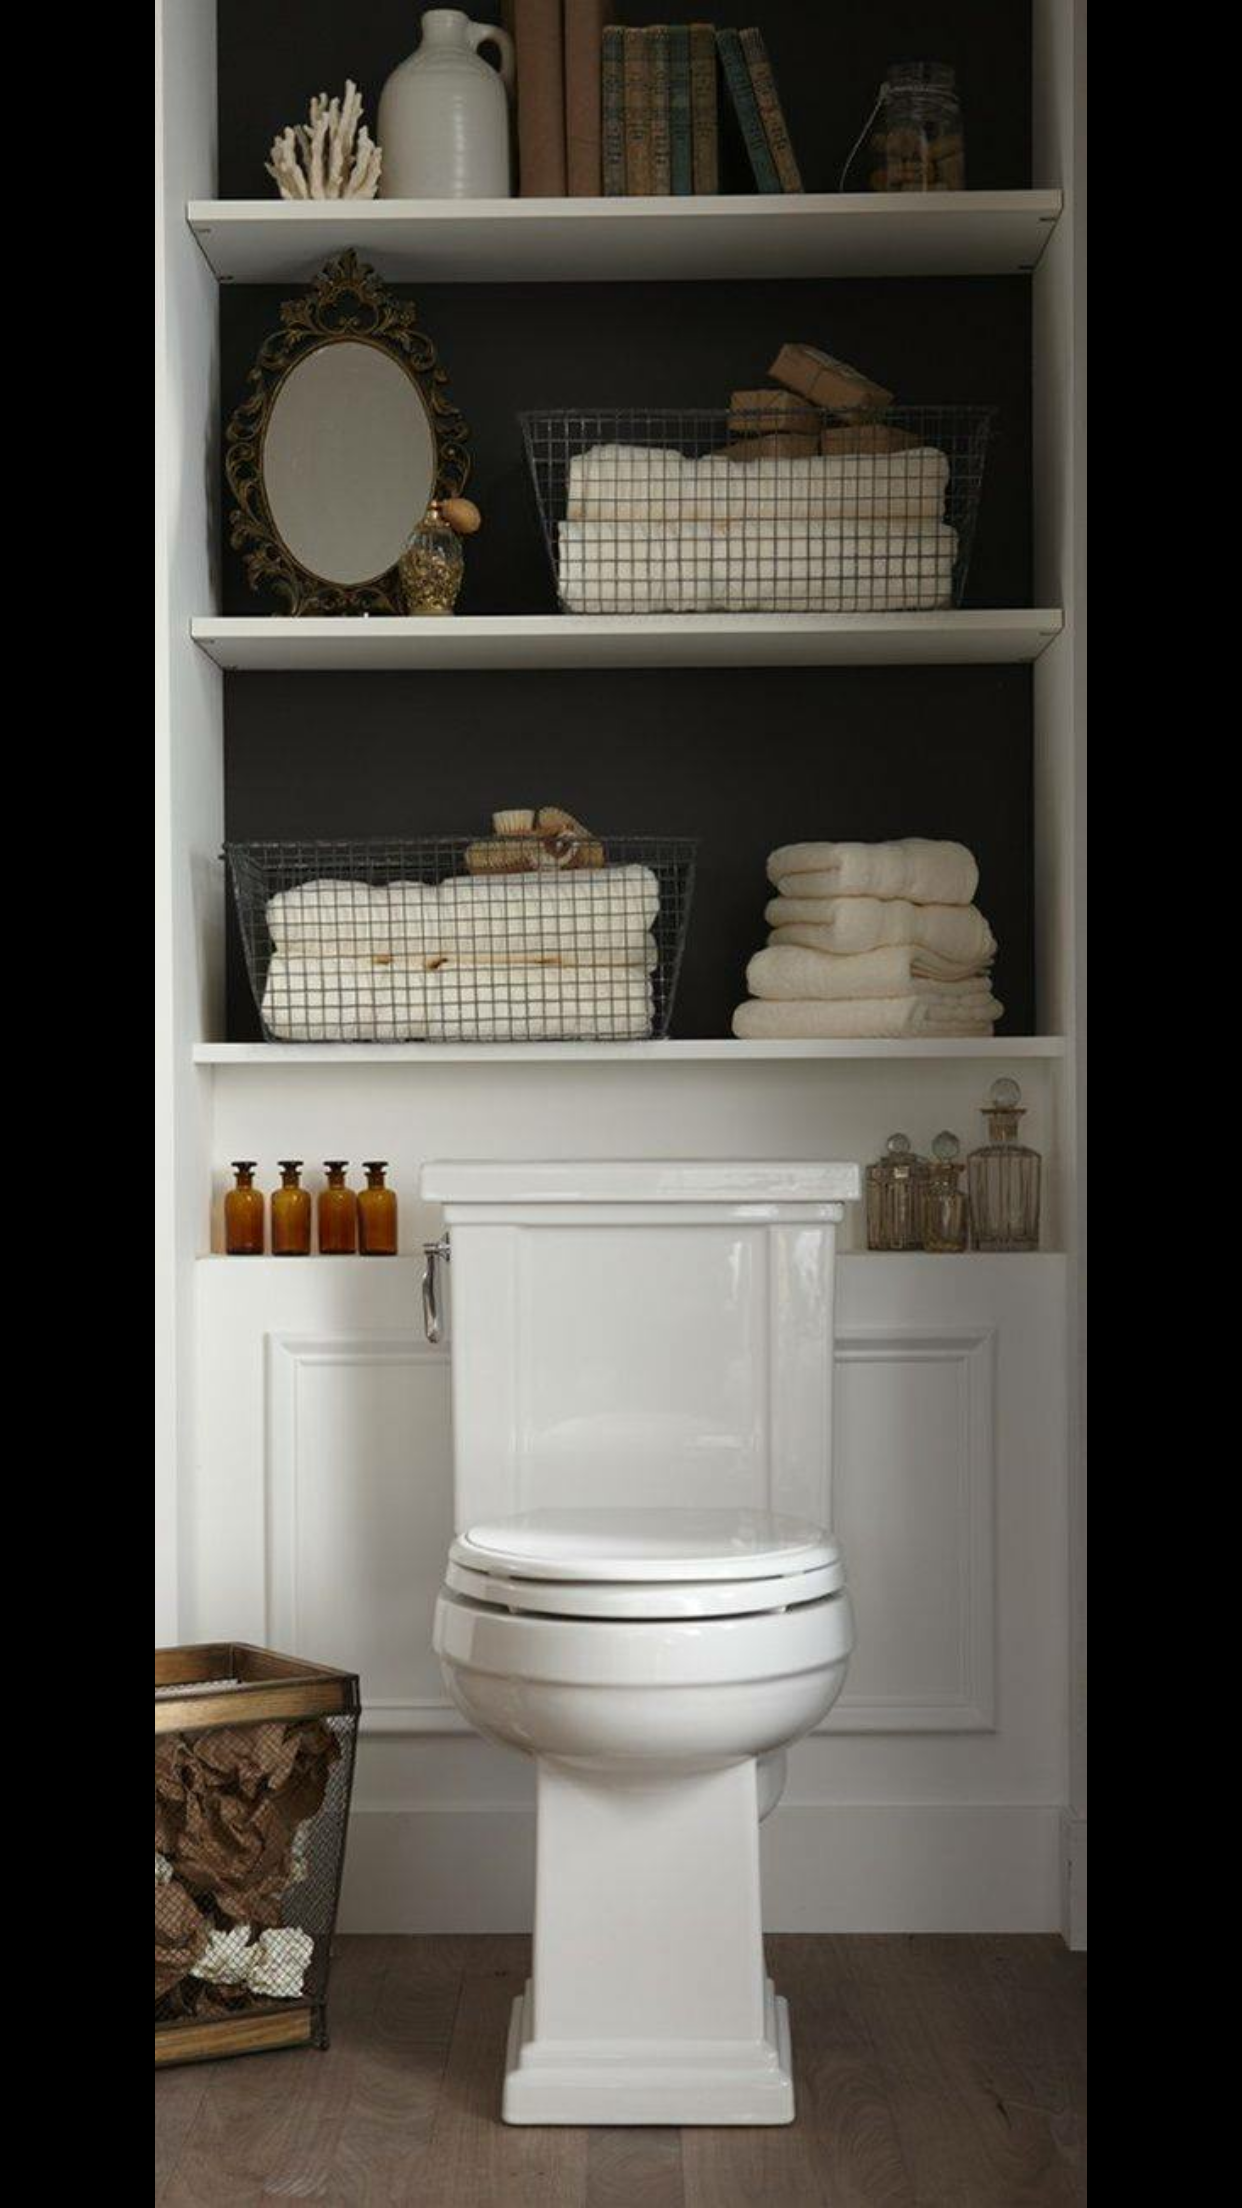 pin by maureen detweiler on bathrooms in 2019 shelves behind rh pinterest com